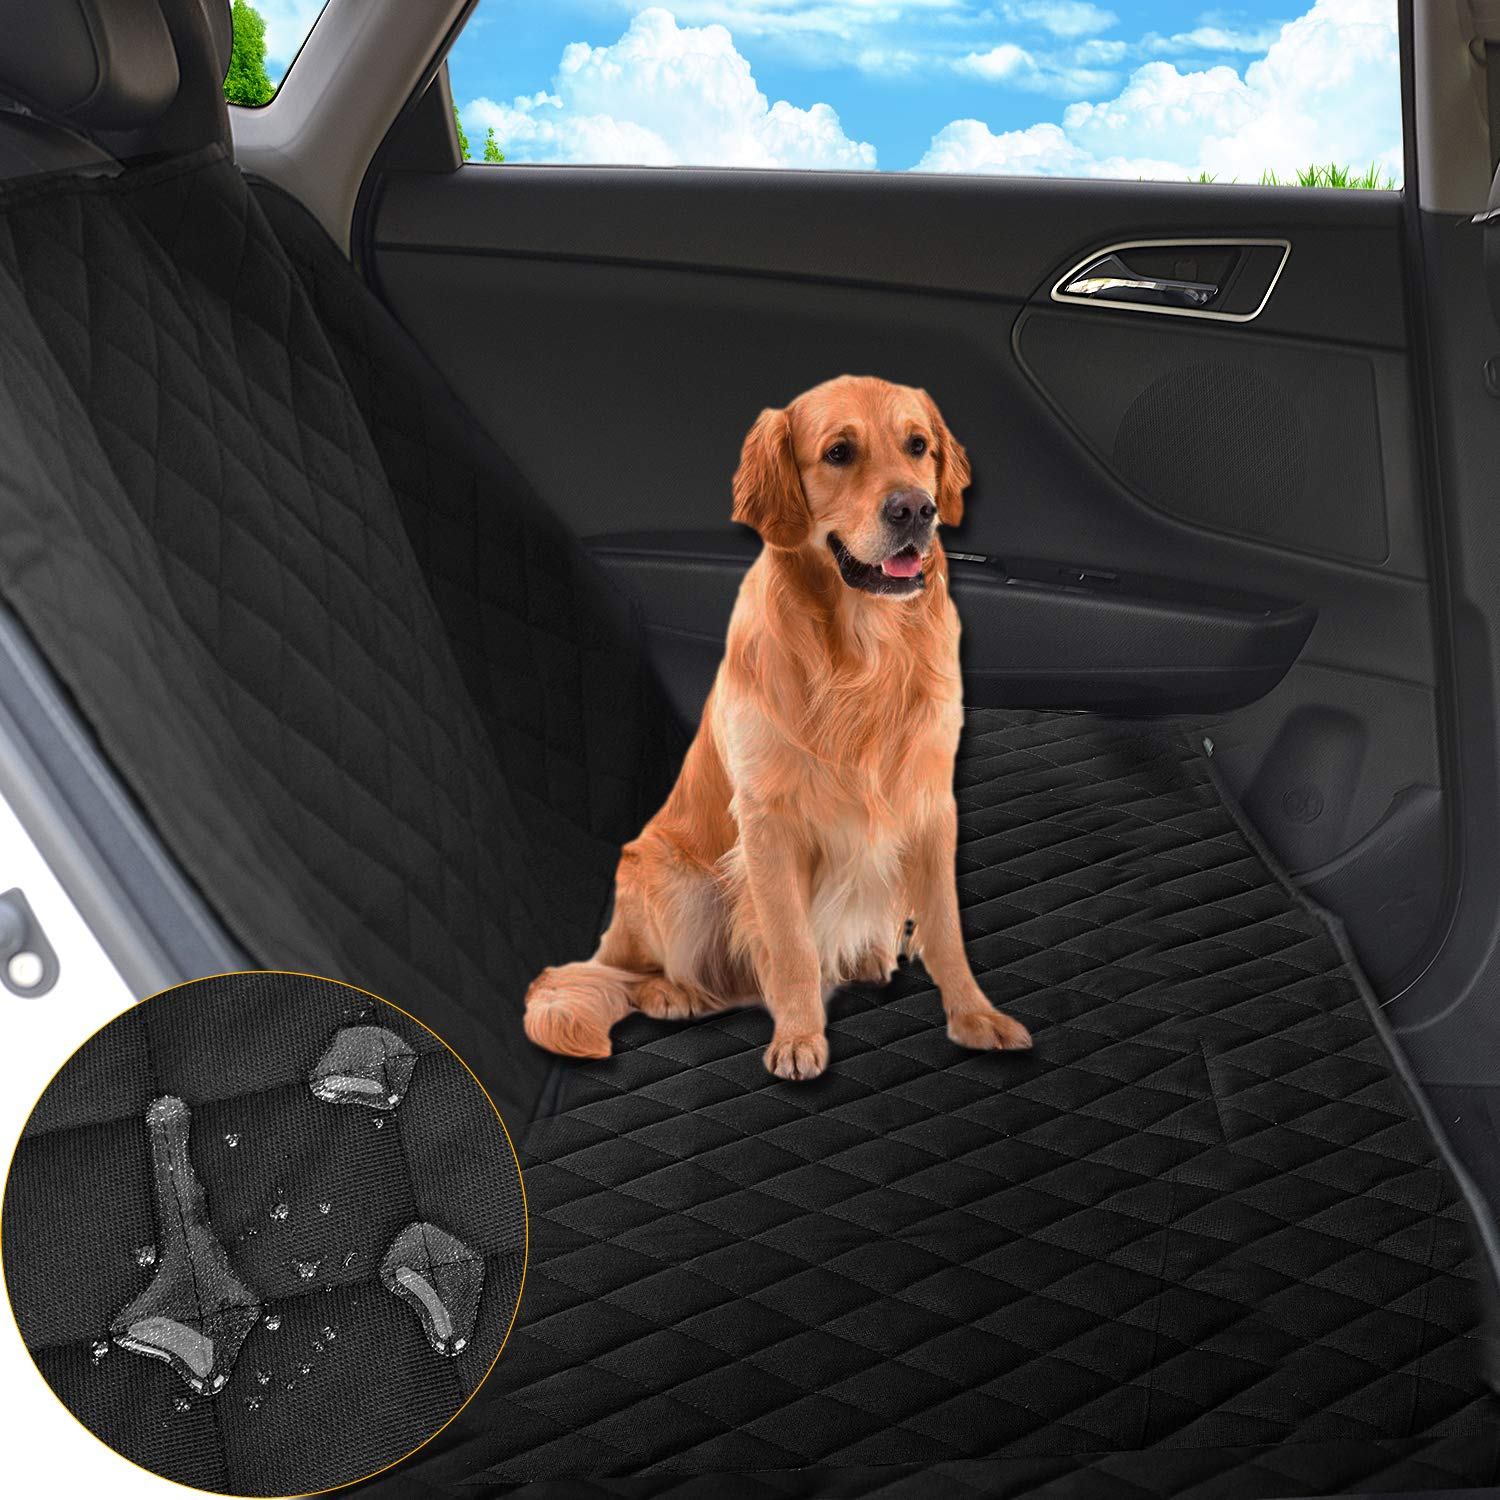 JINCong Pet Seat Cover Scratch-Proof Waterproof Anti-Slip Dog Car Seat Covers Enhanced Sewing Suitable for Car Trucks SUV Rear Seat Protection Black